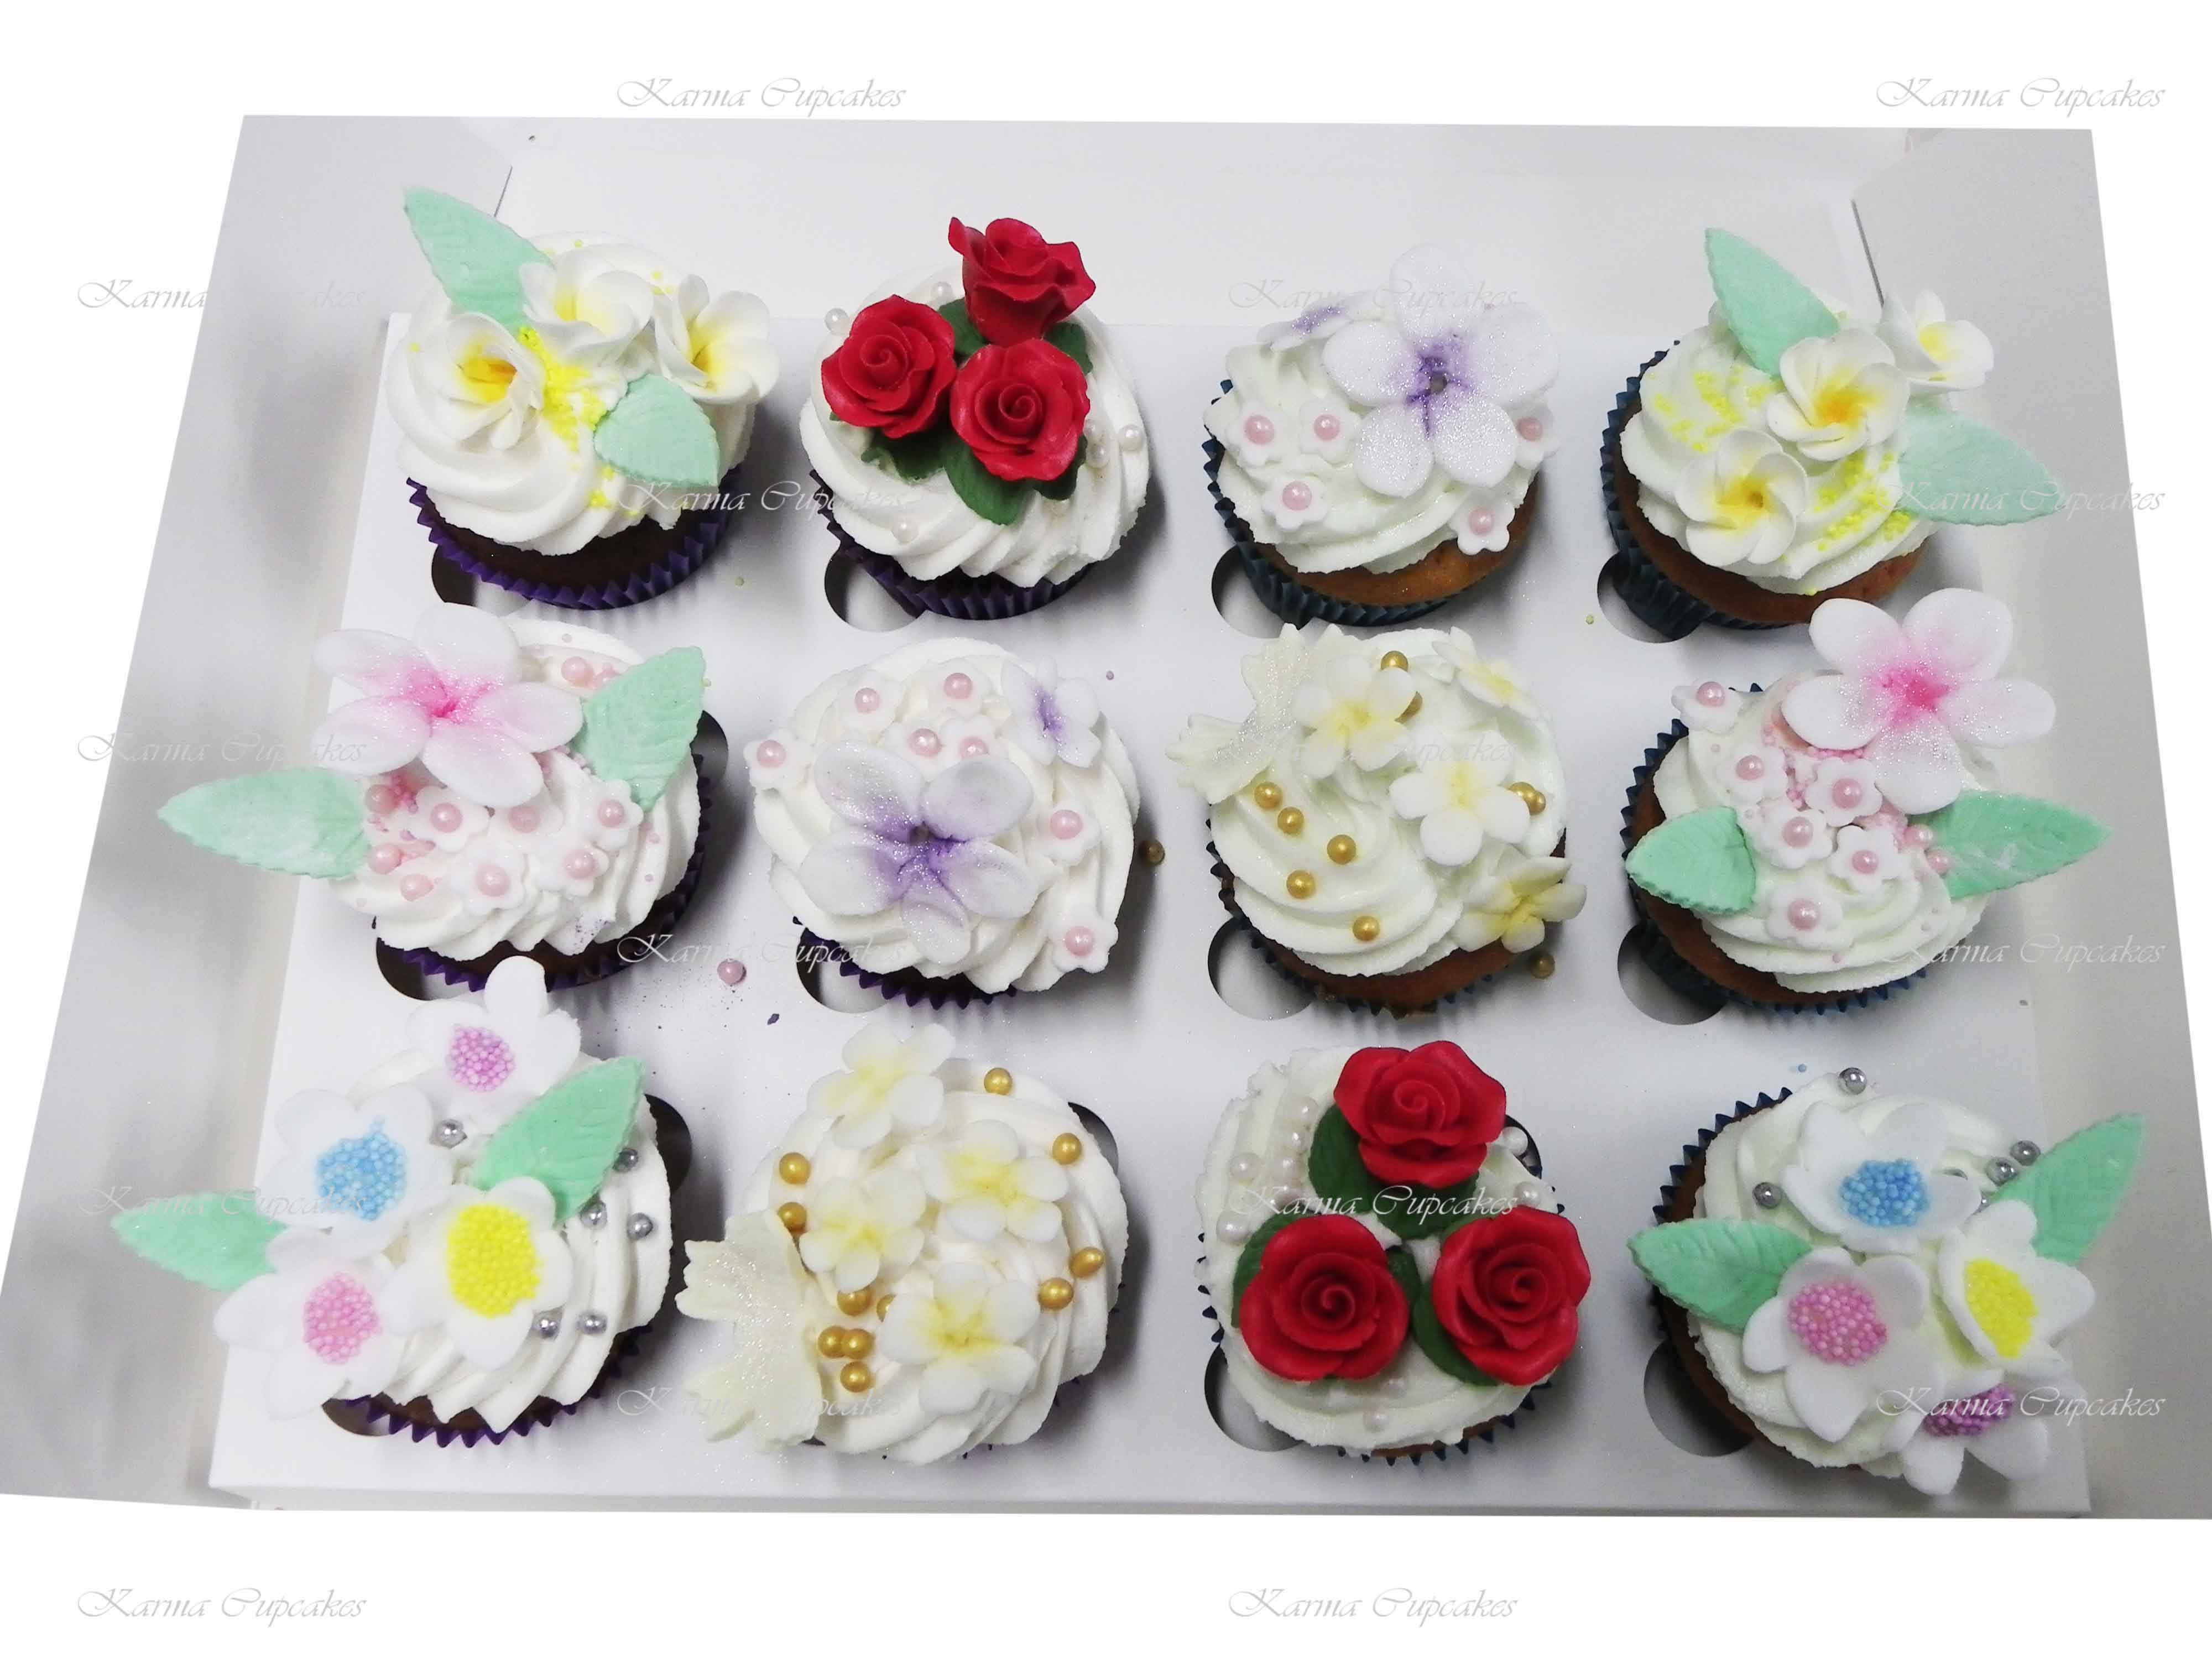 Pleasant Birthday Cupcakes With Edible Flowers And Leaves Funny Birthday Cards Online Inifofree Goldxyz